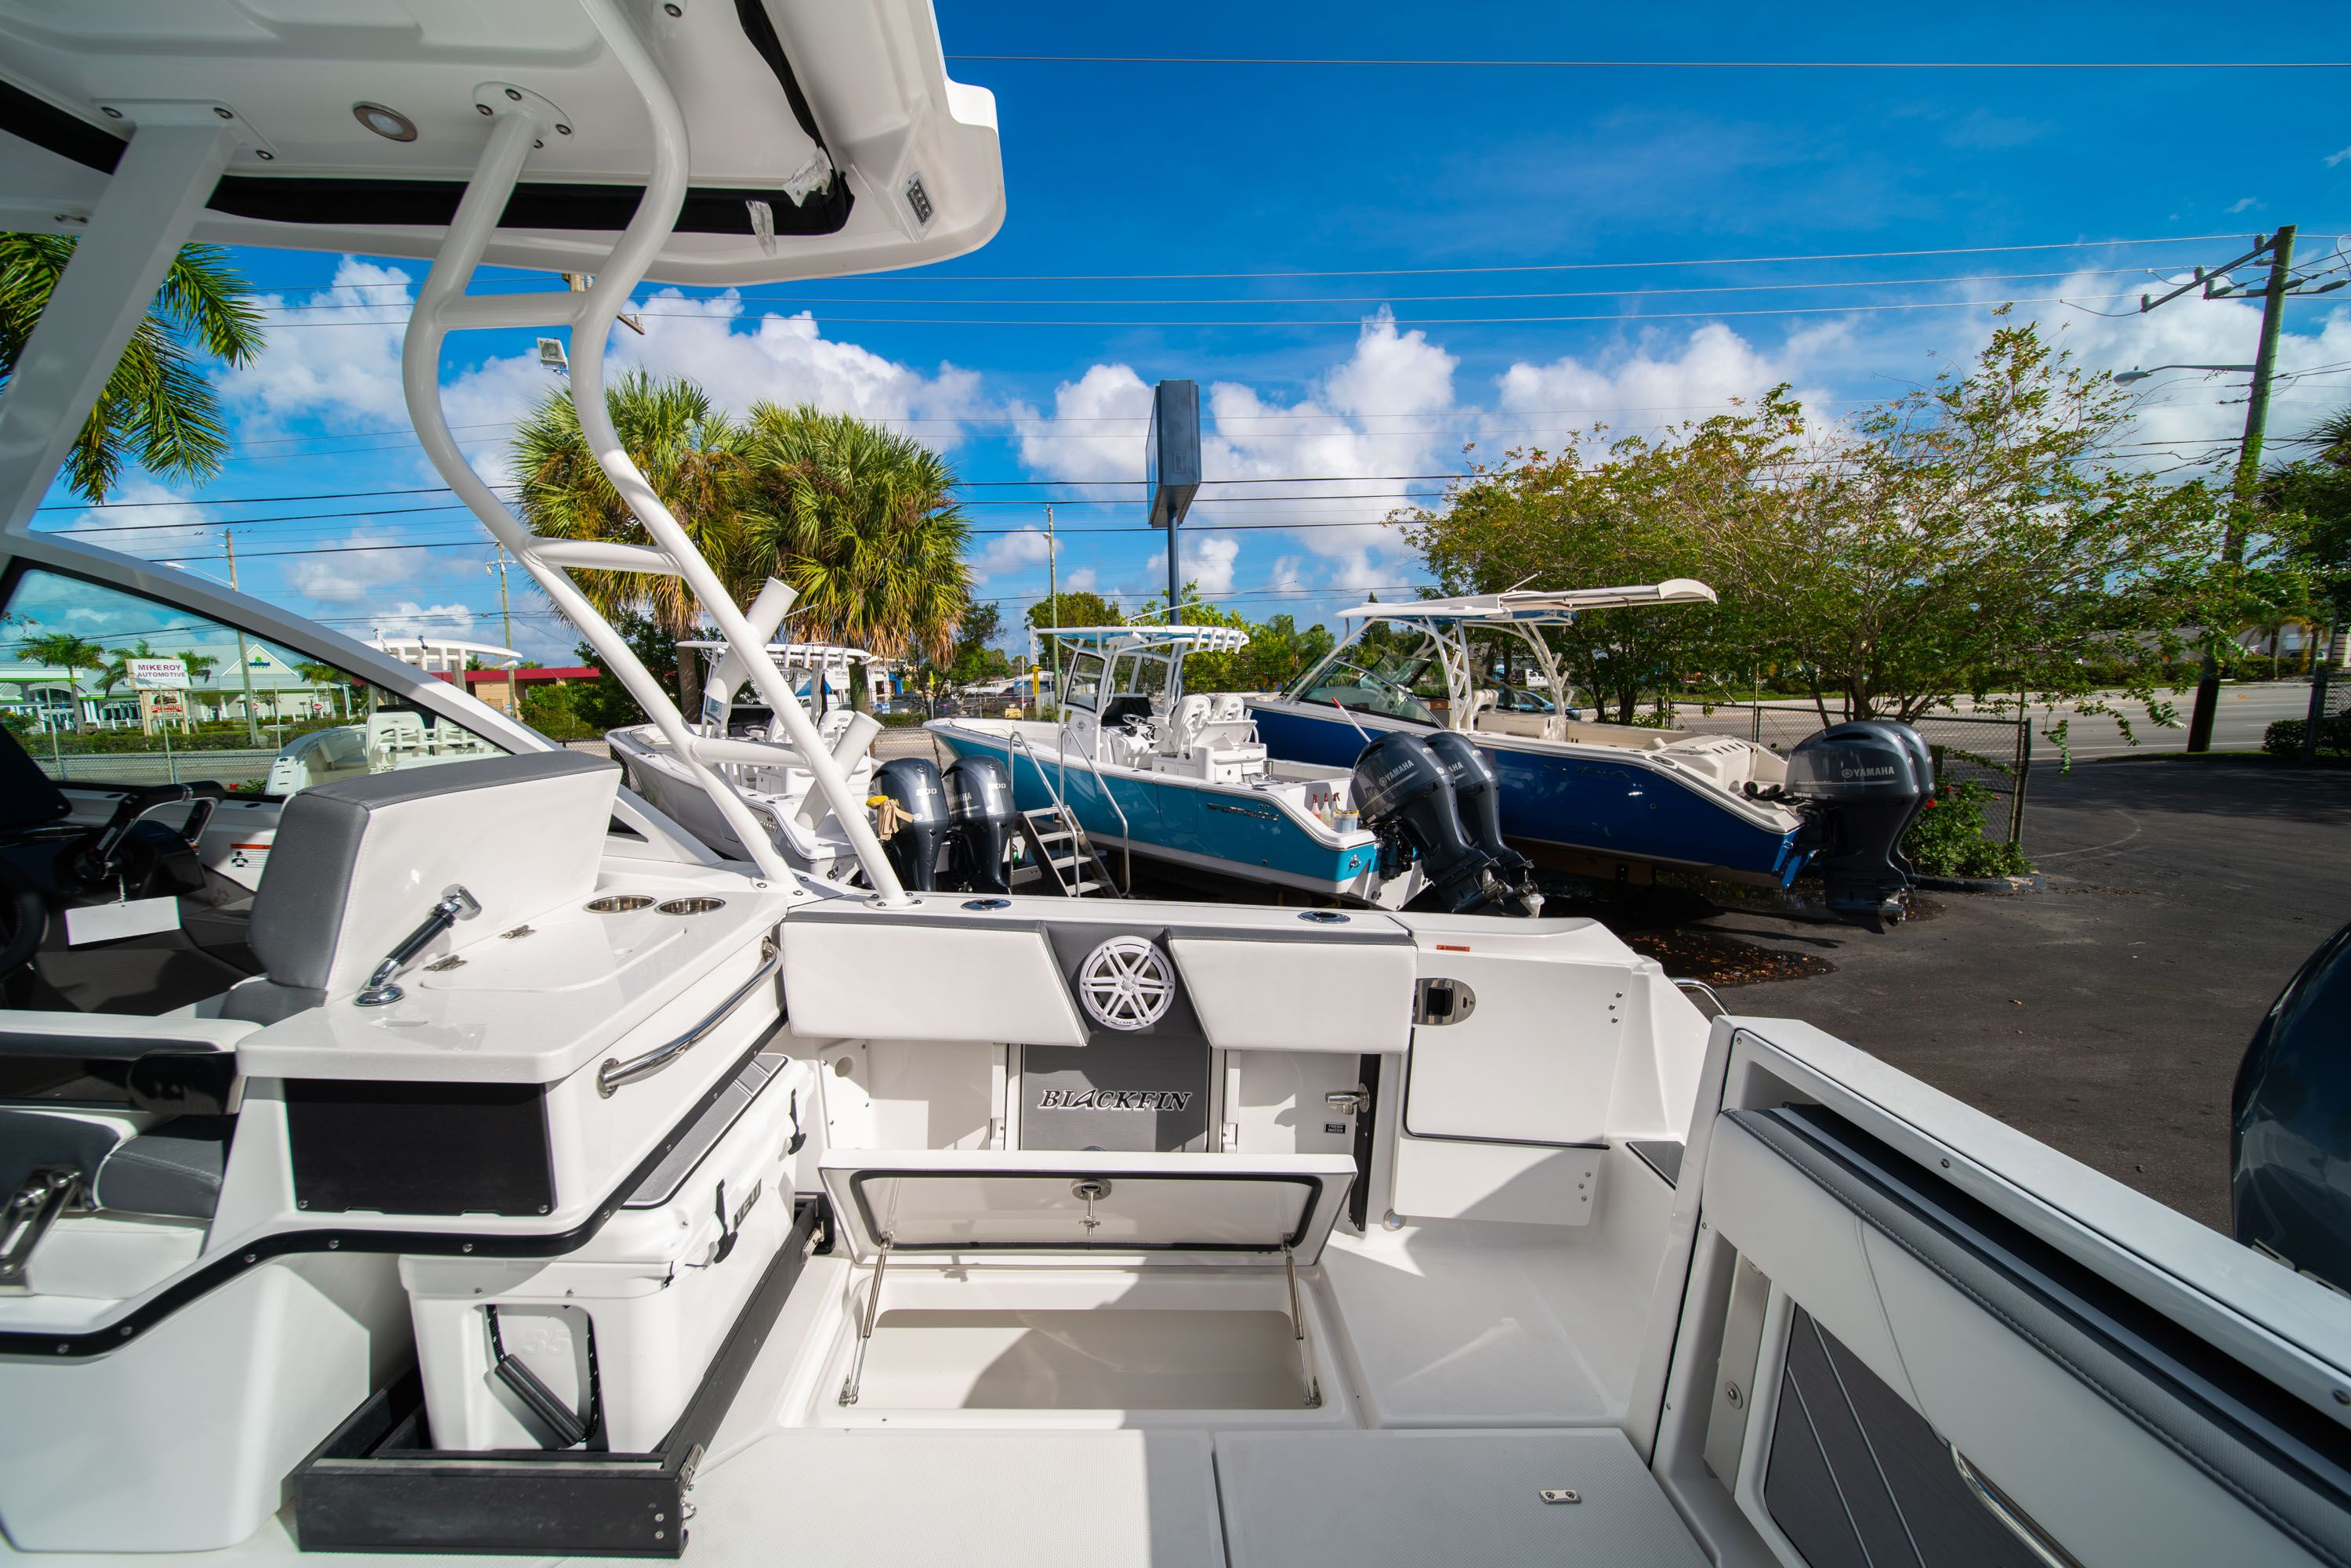 Thumbnail 20 for New 2020 Blackfin 242DC Dual Console boat for sale in West Palm Beach, FL